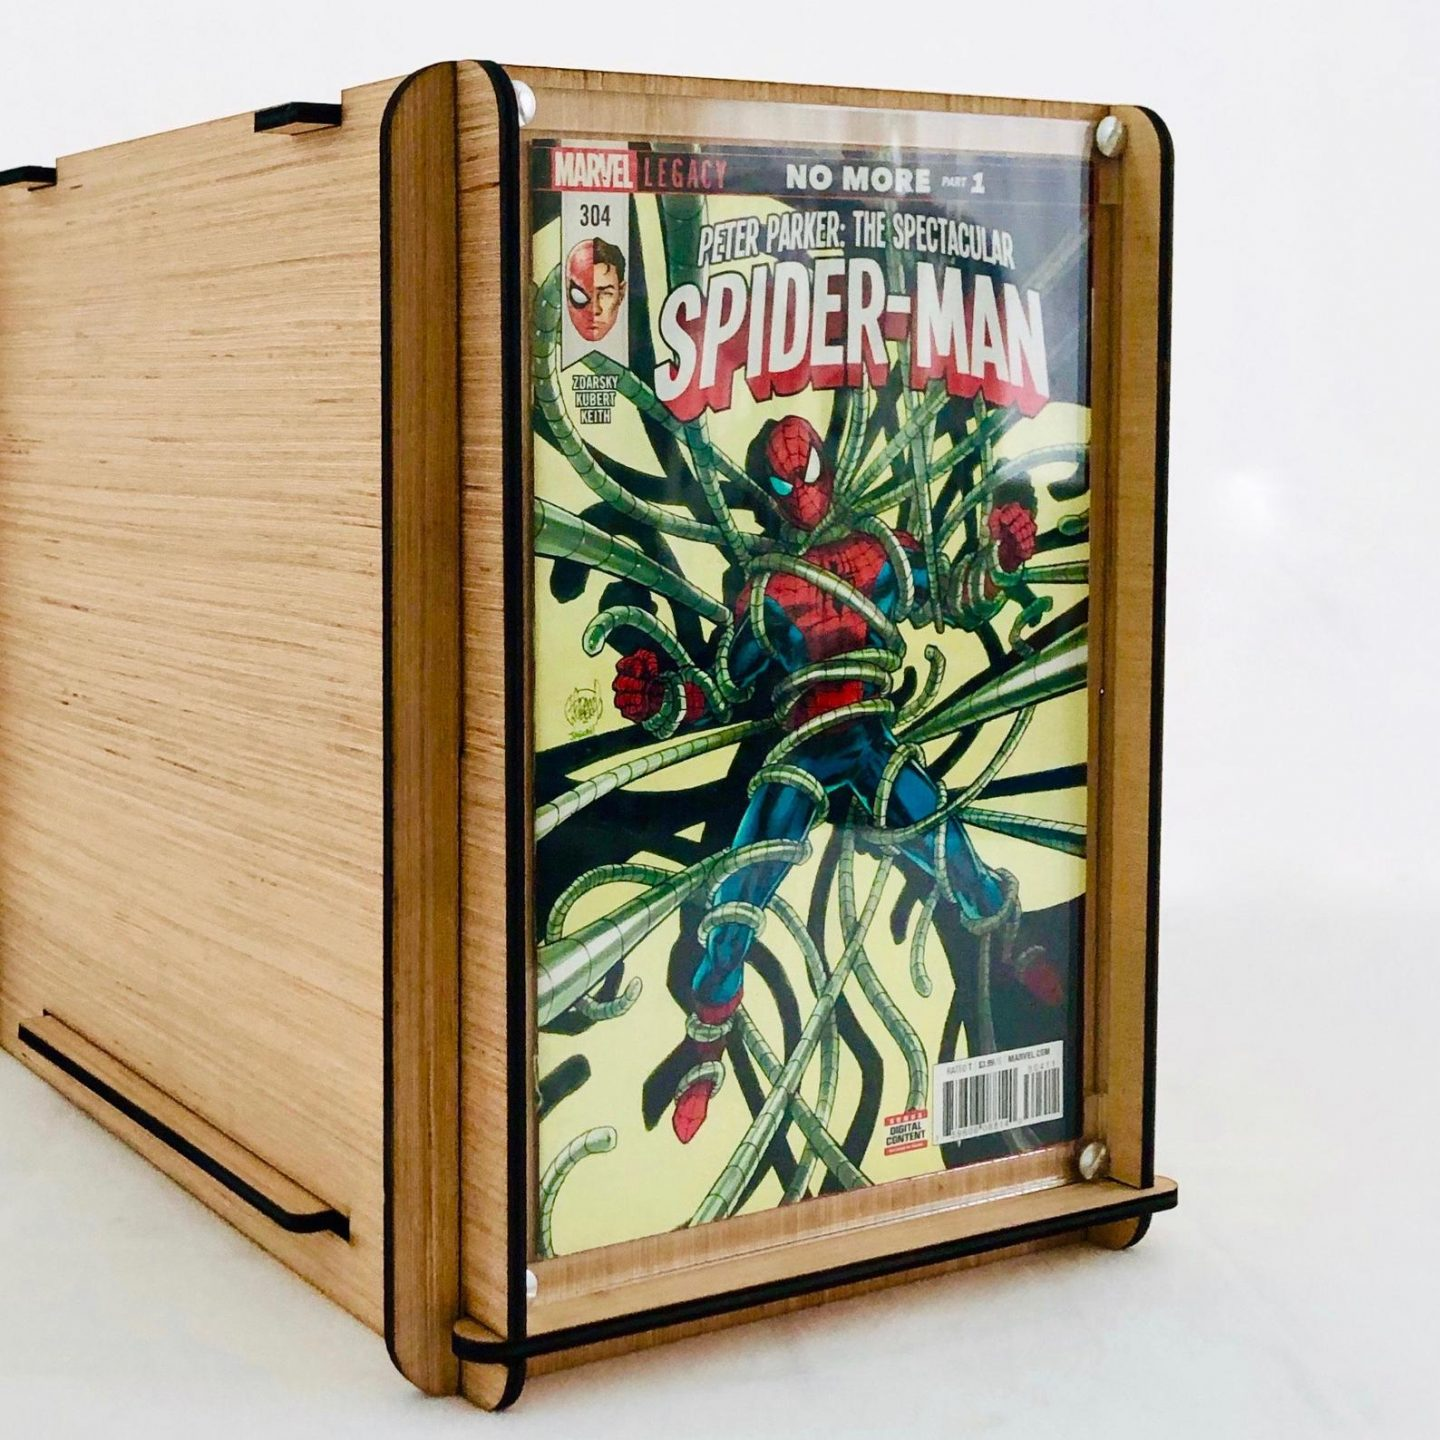 A comic book storage box made out of wood with a Plexiglass frame.